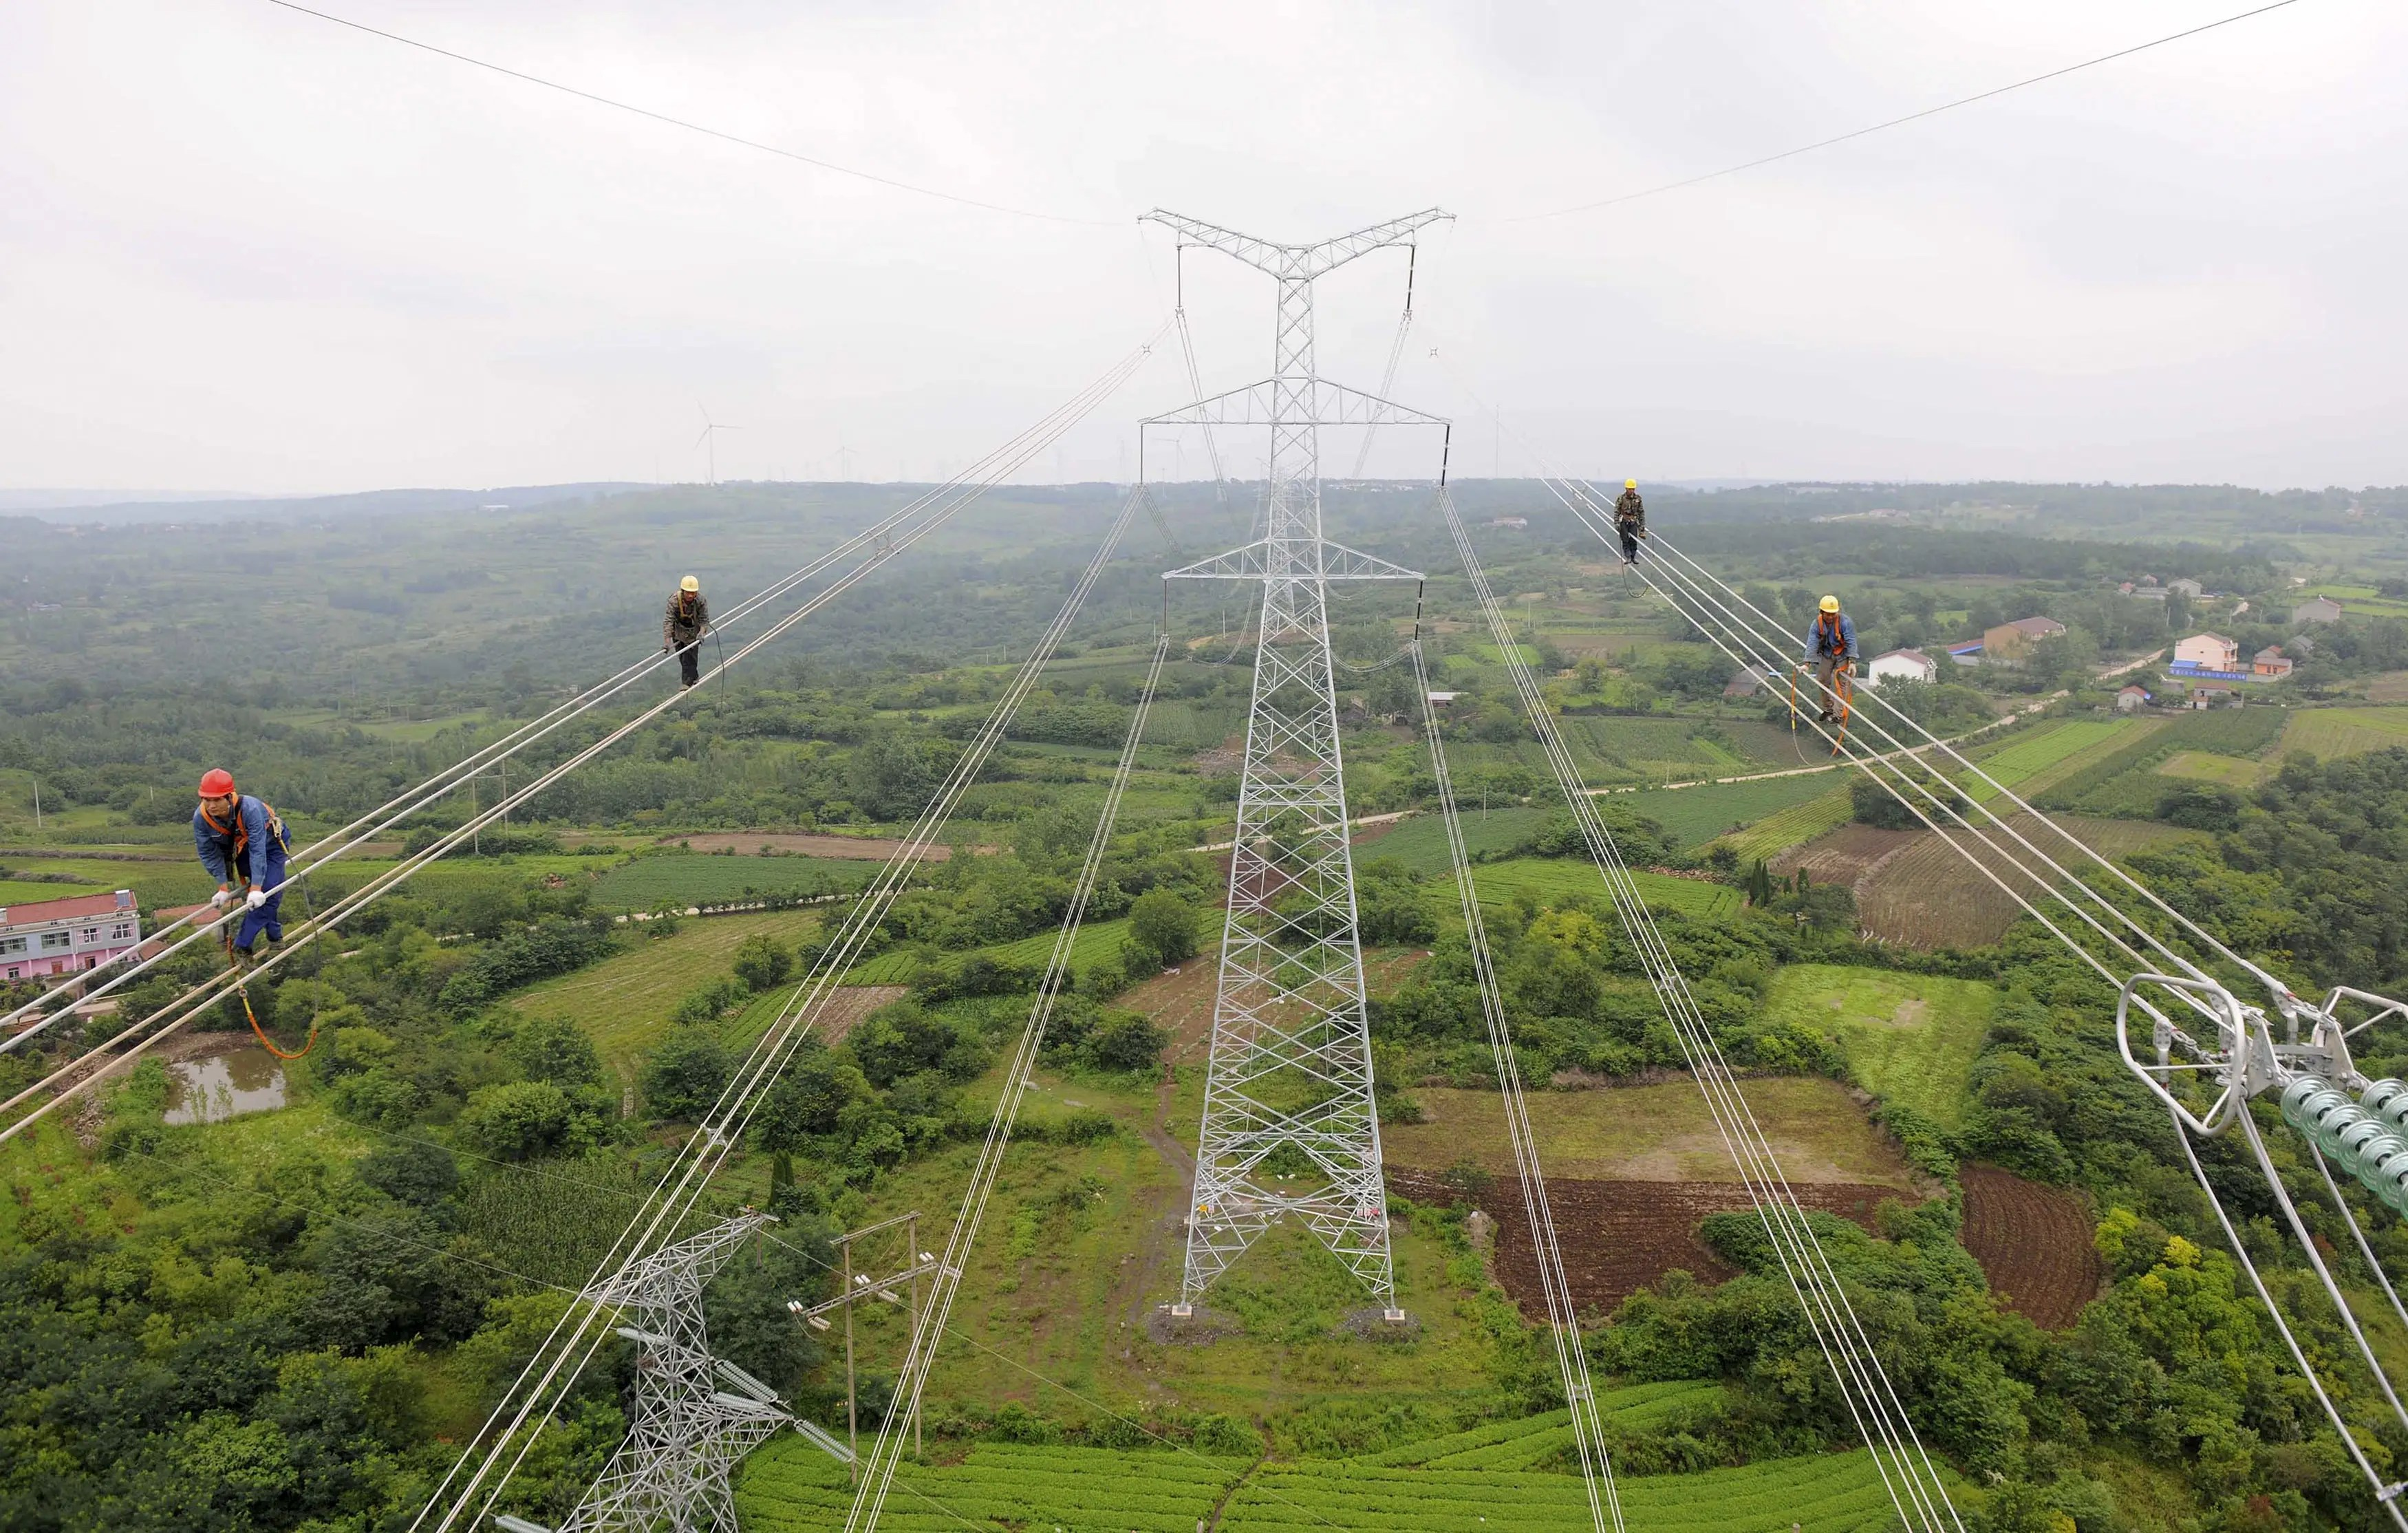 Workers walk along wires as they inspect newly-built electricity pylons above crop fields in Chuzhou within the Anhui province of China.